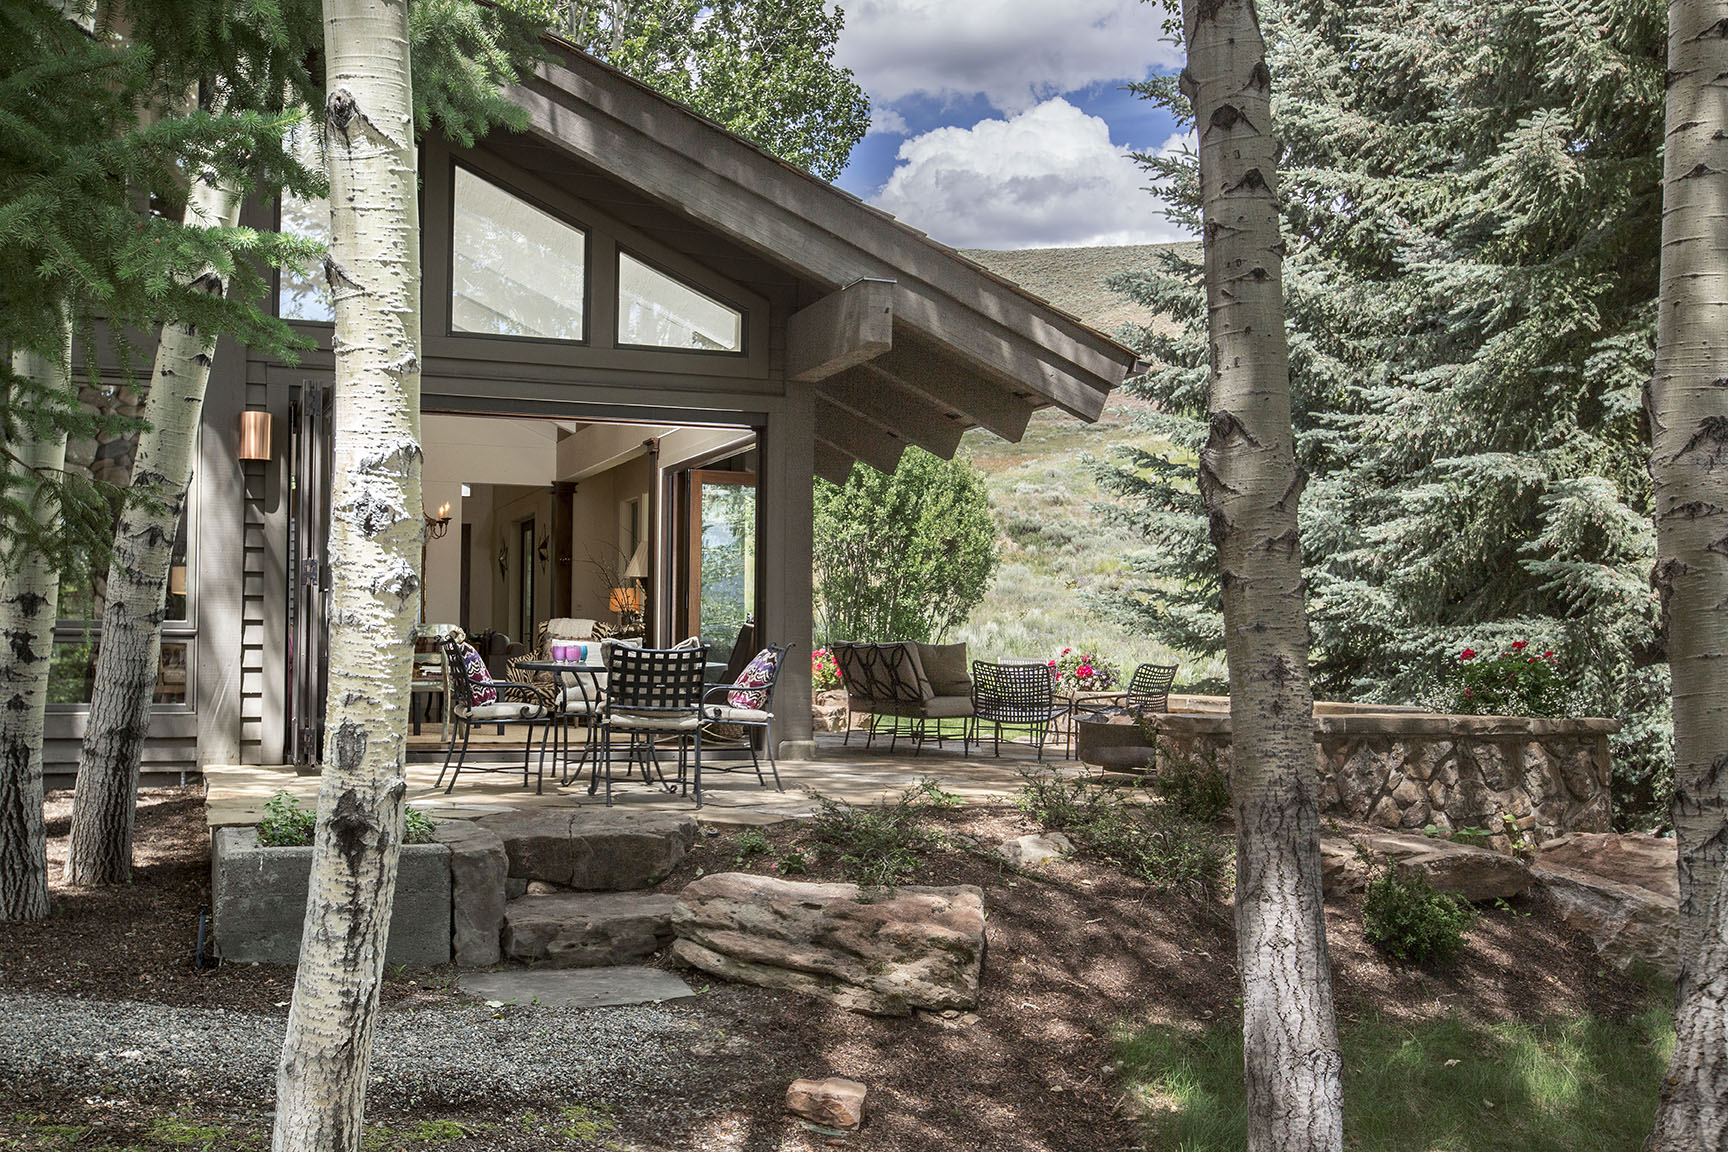 Single Family Home for Sale at Sought-After Sun Valley Location with Views 100 Skyline Drive Sun Valley, Idaho 83353 United States